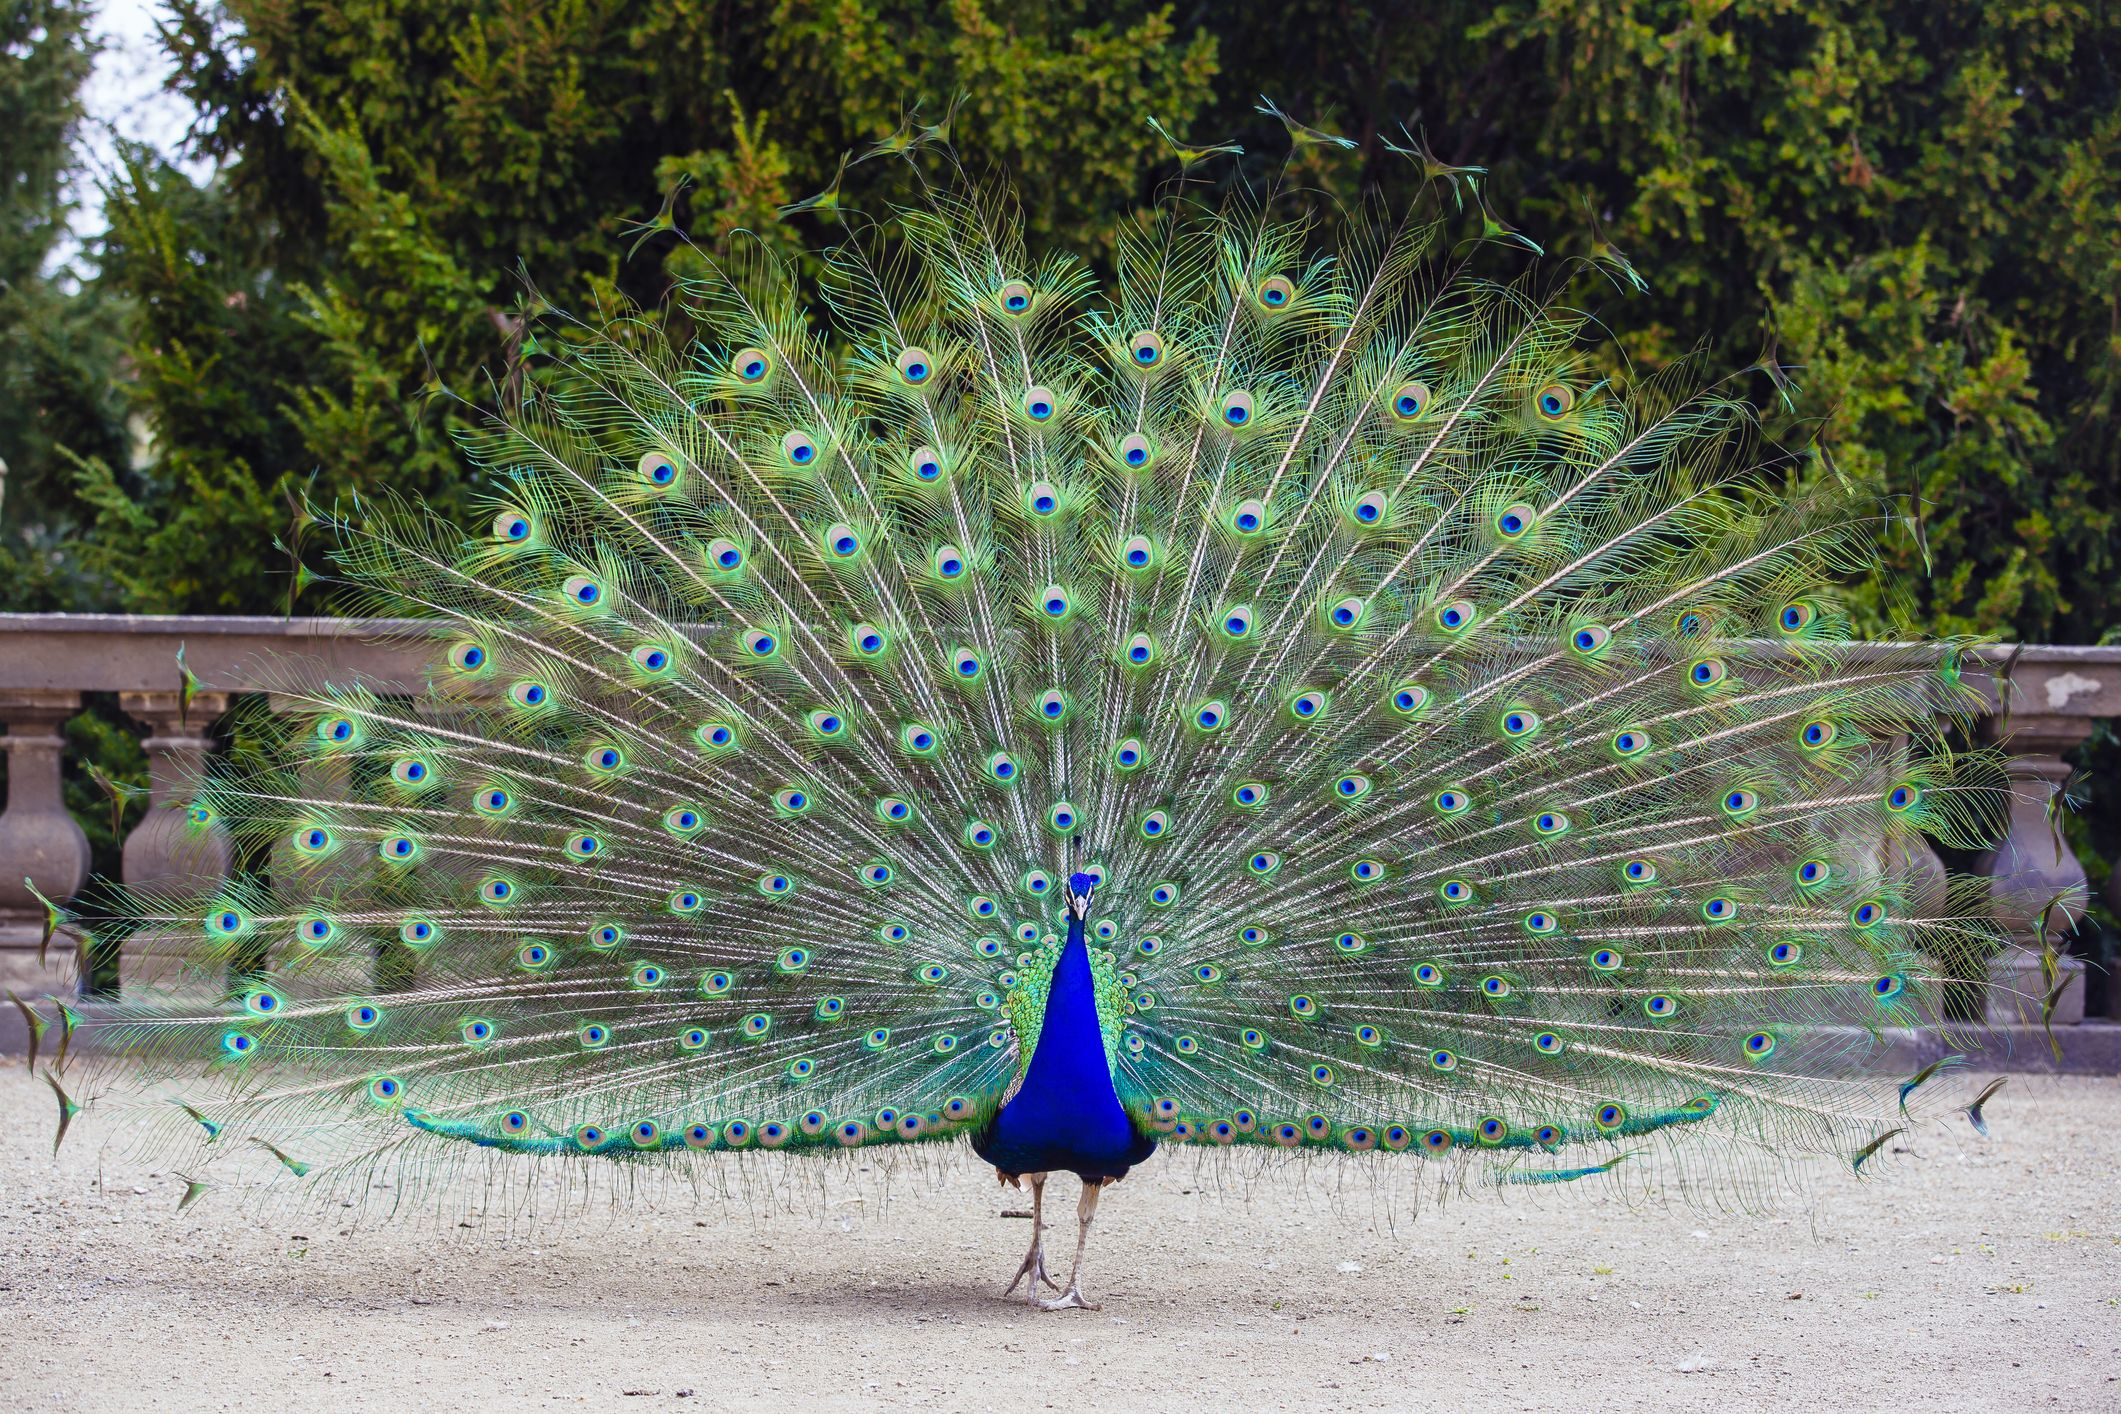 Close up of colorful peacock with his feathers fanned out